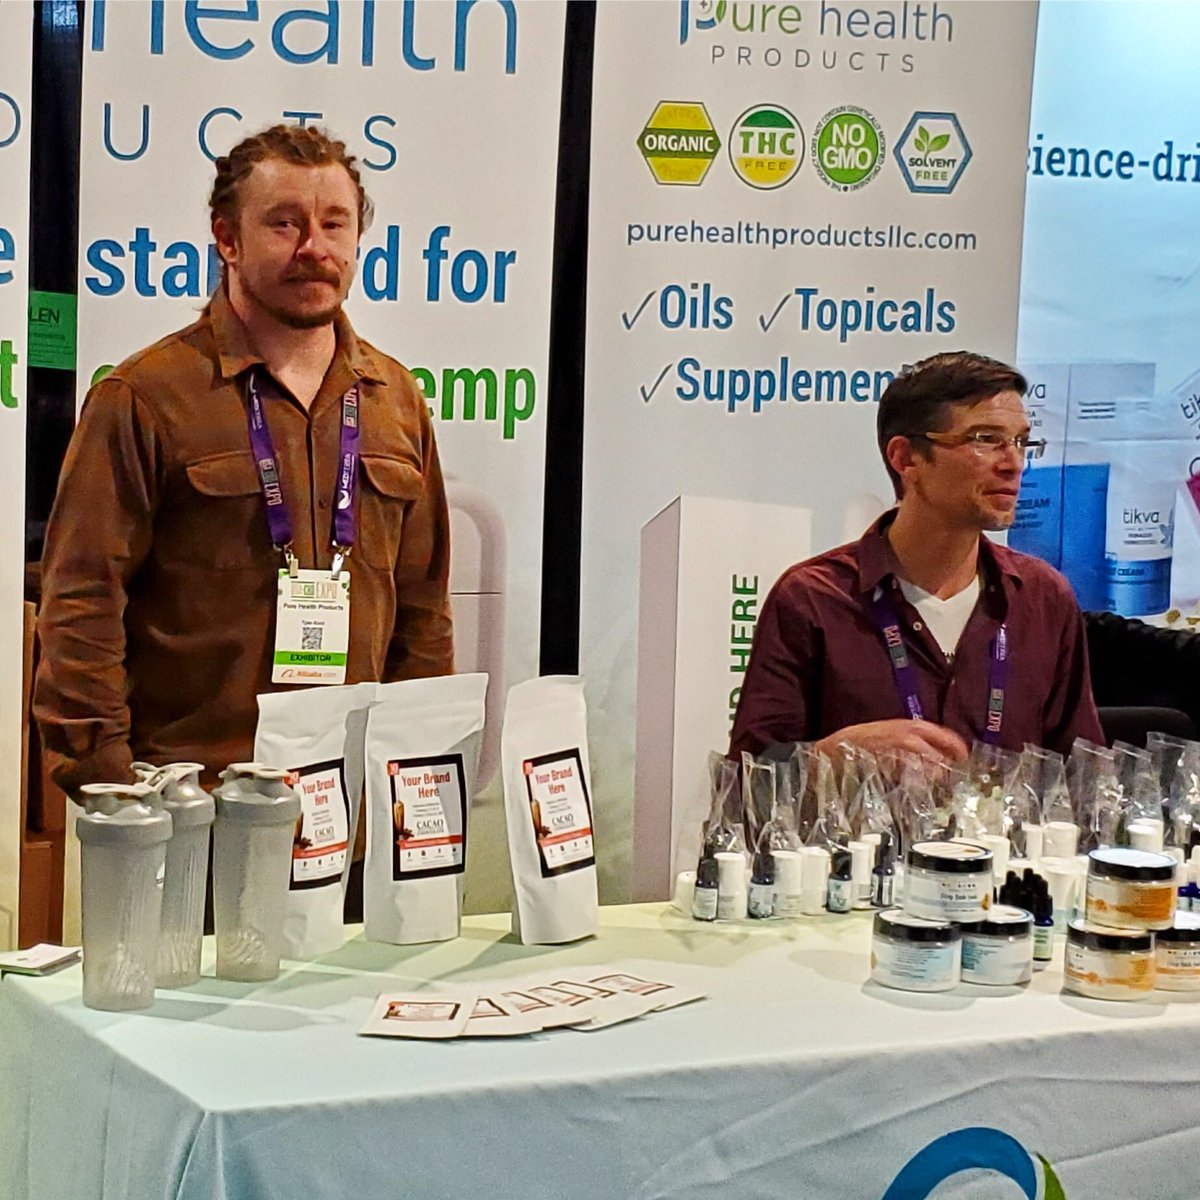 Pure Health Products makes the highest quality CBD & Wellness stock products and custom products. http://www.purehealthproductsllc.com   #whitelabel #privatelabel #CBDproducts #CBD #CBDwhitelabel #whitelabelCBD #privatelabelCBD #CBDprivatelabel #CBDbenefits #hempCBD #CBDhemp #cbd #superfoodspic.twitter.com/9TJKcy4CRS